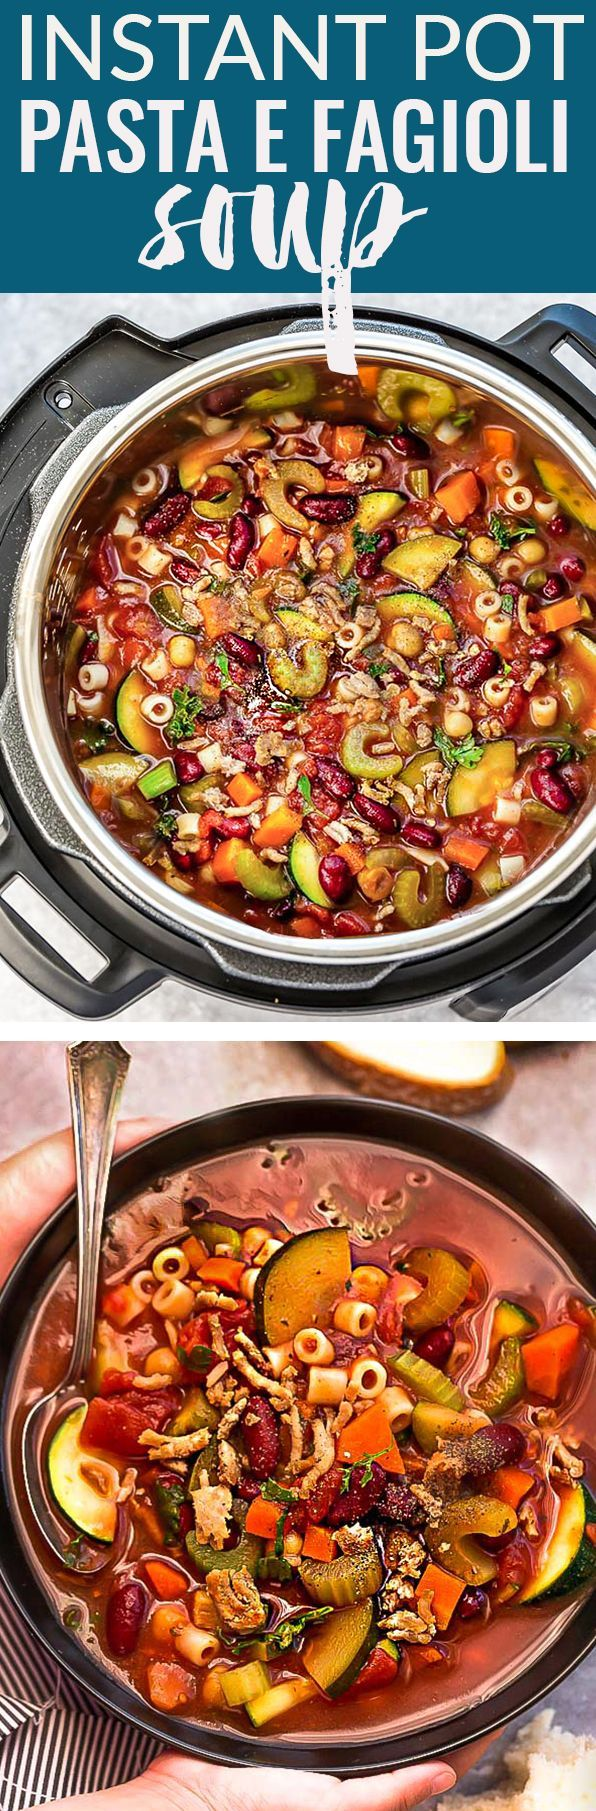 Instant Pot Pasta e Fagioli Soup  Easy Italian Soup Recipe This Instant Pot Slow Cooker Pasta e Fagioli Soup is a lightened up and hearty sticktoyourribs recipe perfect f...